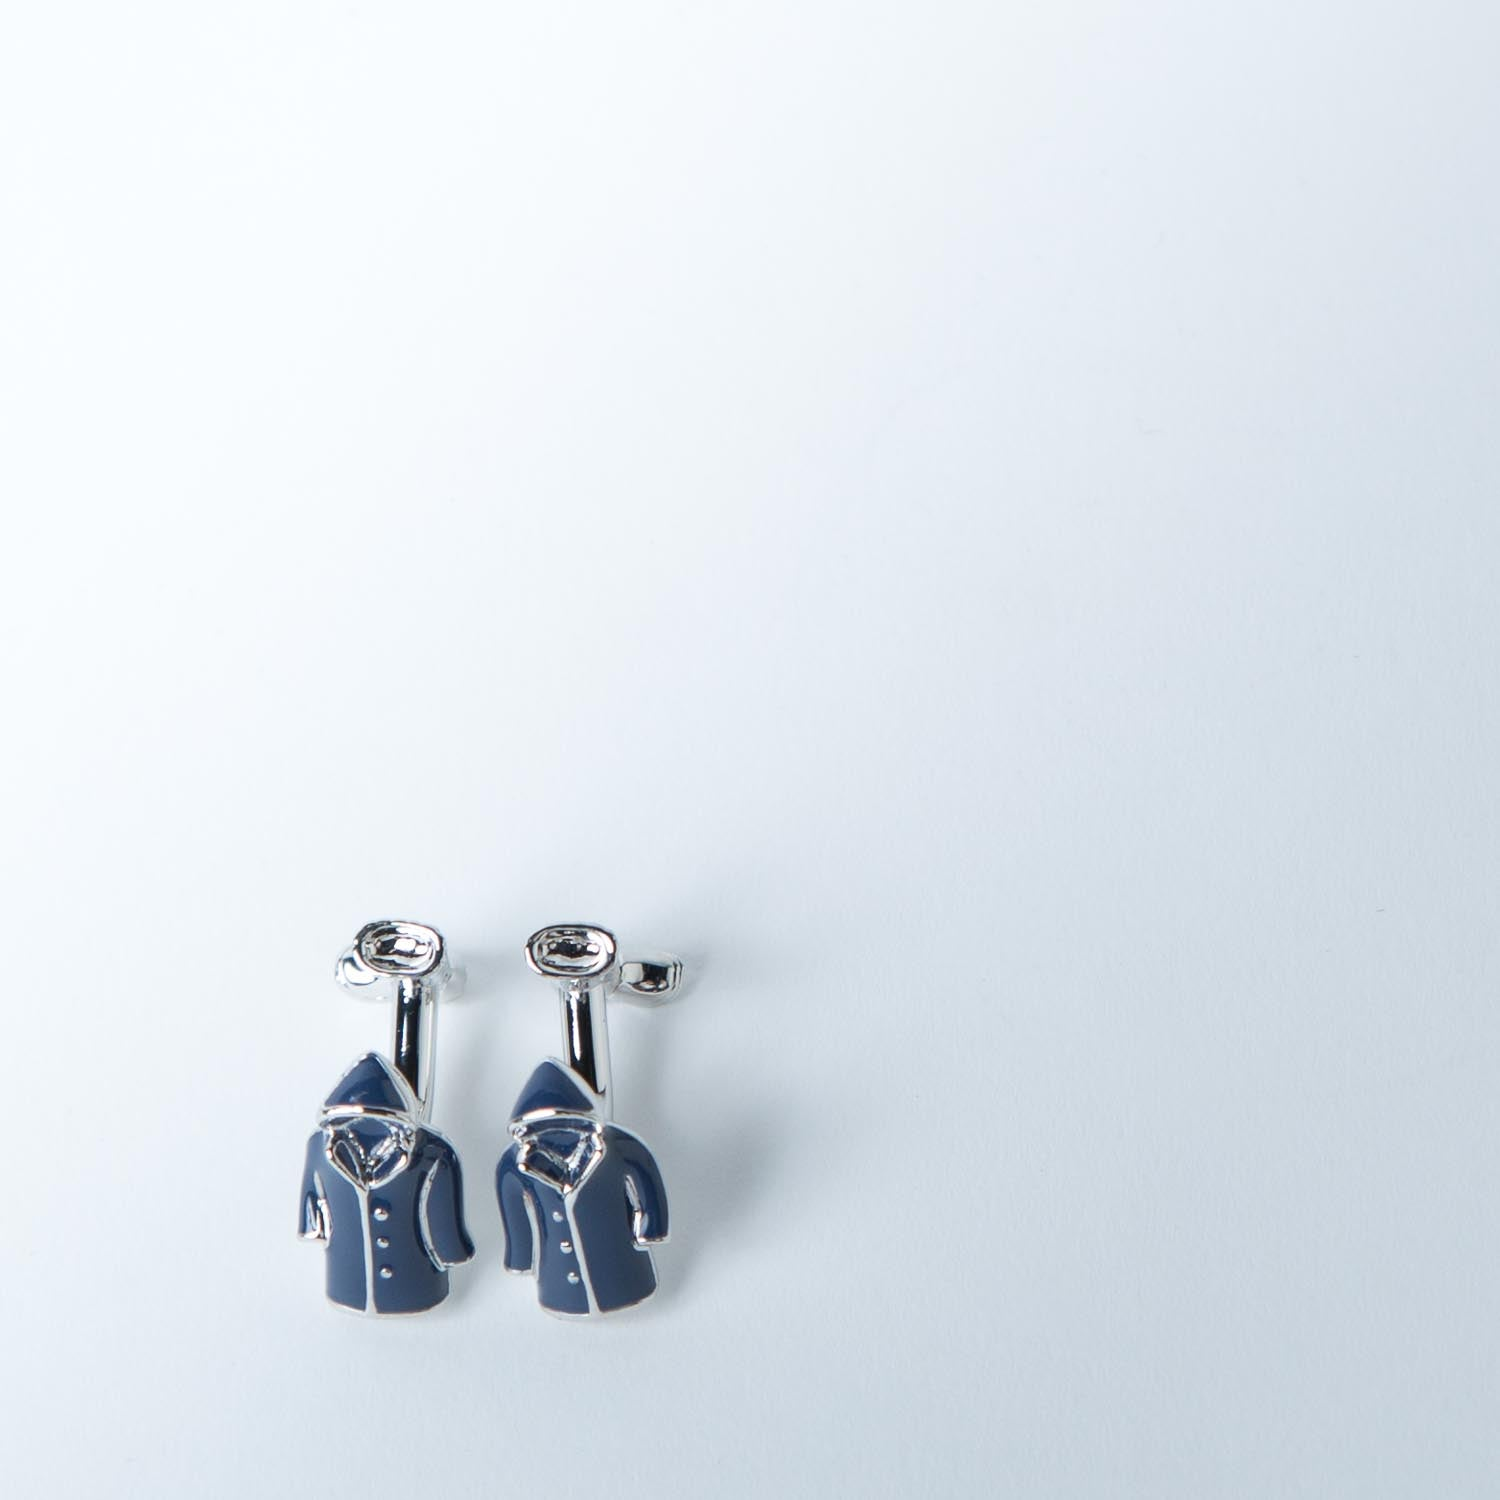 Raincoat & Wellies Cufflinks